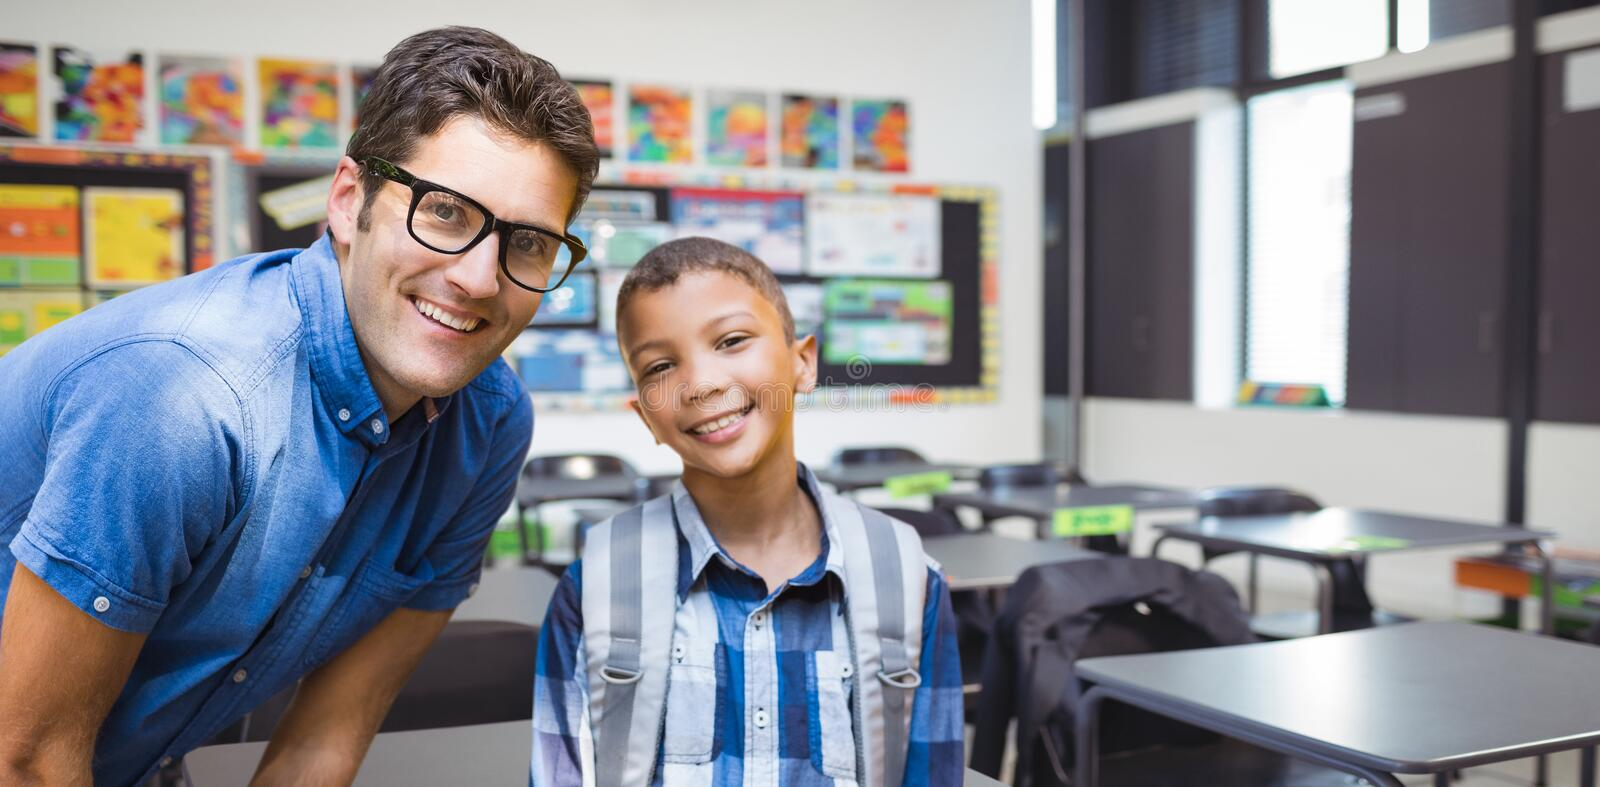 Composite image of portrait of smiling male teacher with student. Portrait of smiling male teacher with student against interior of empty classroom royalty free stock photos